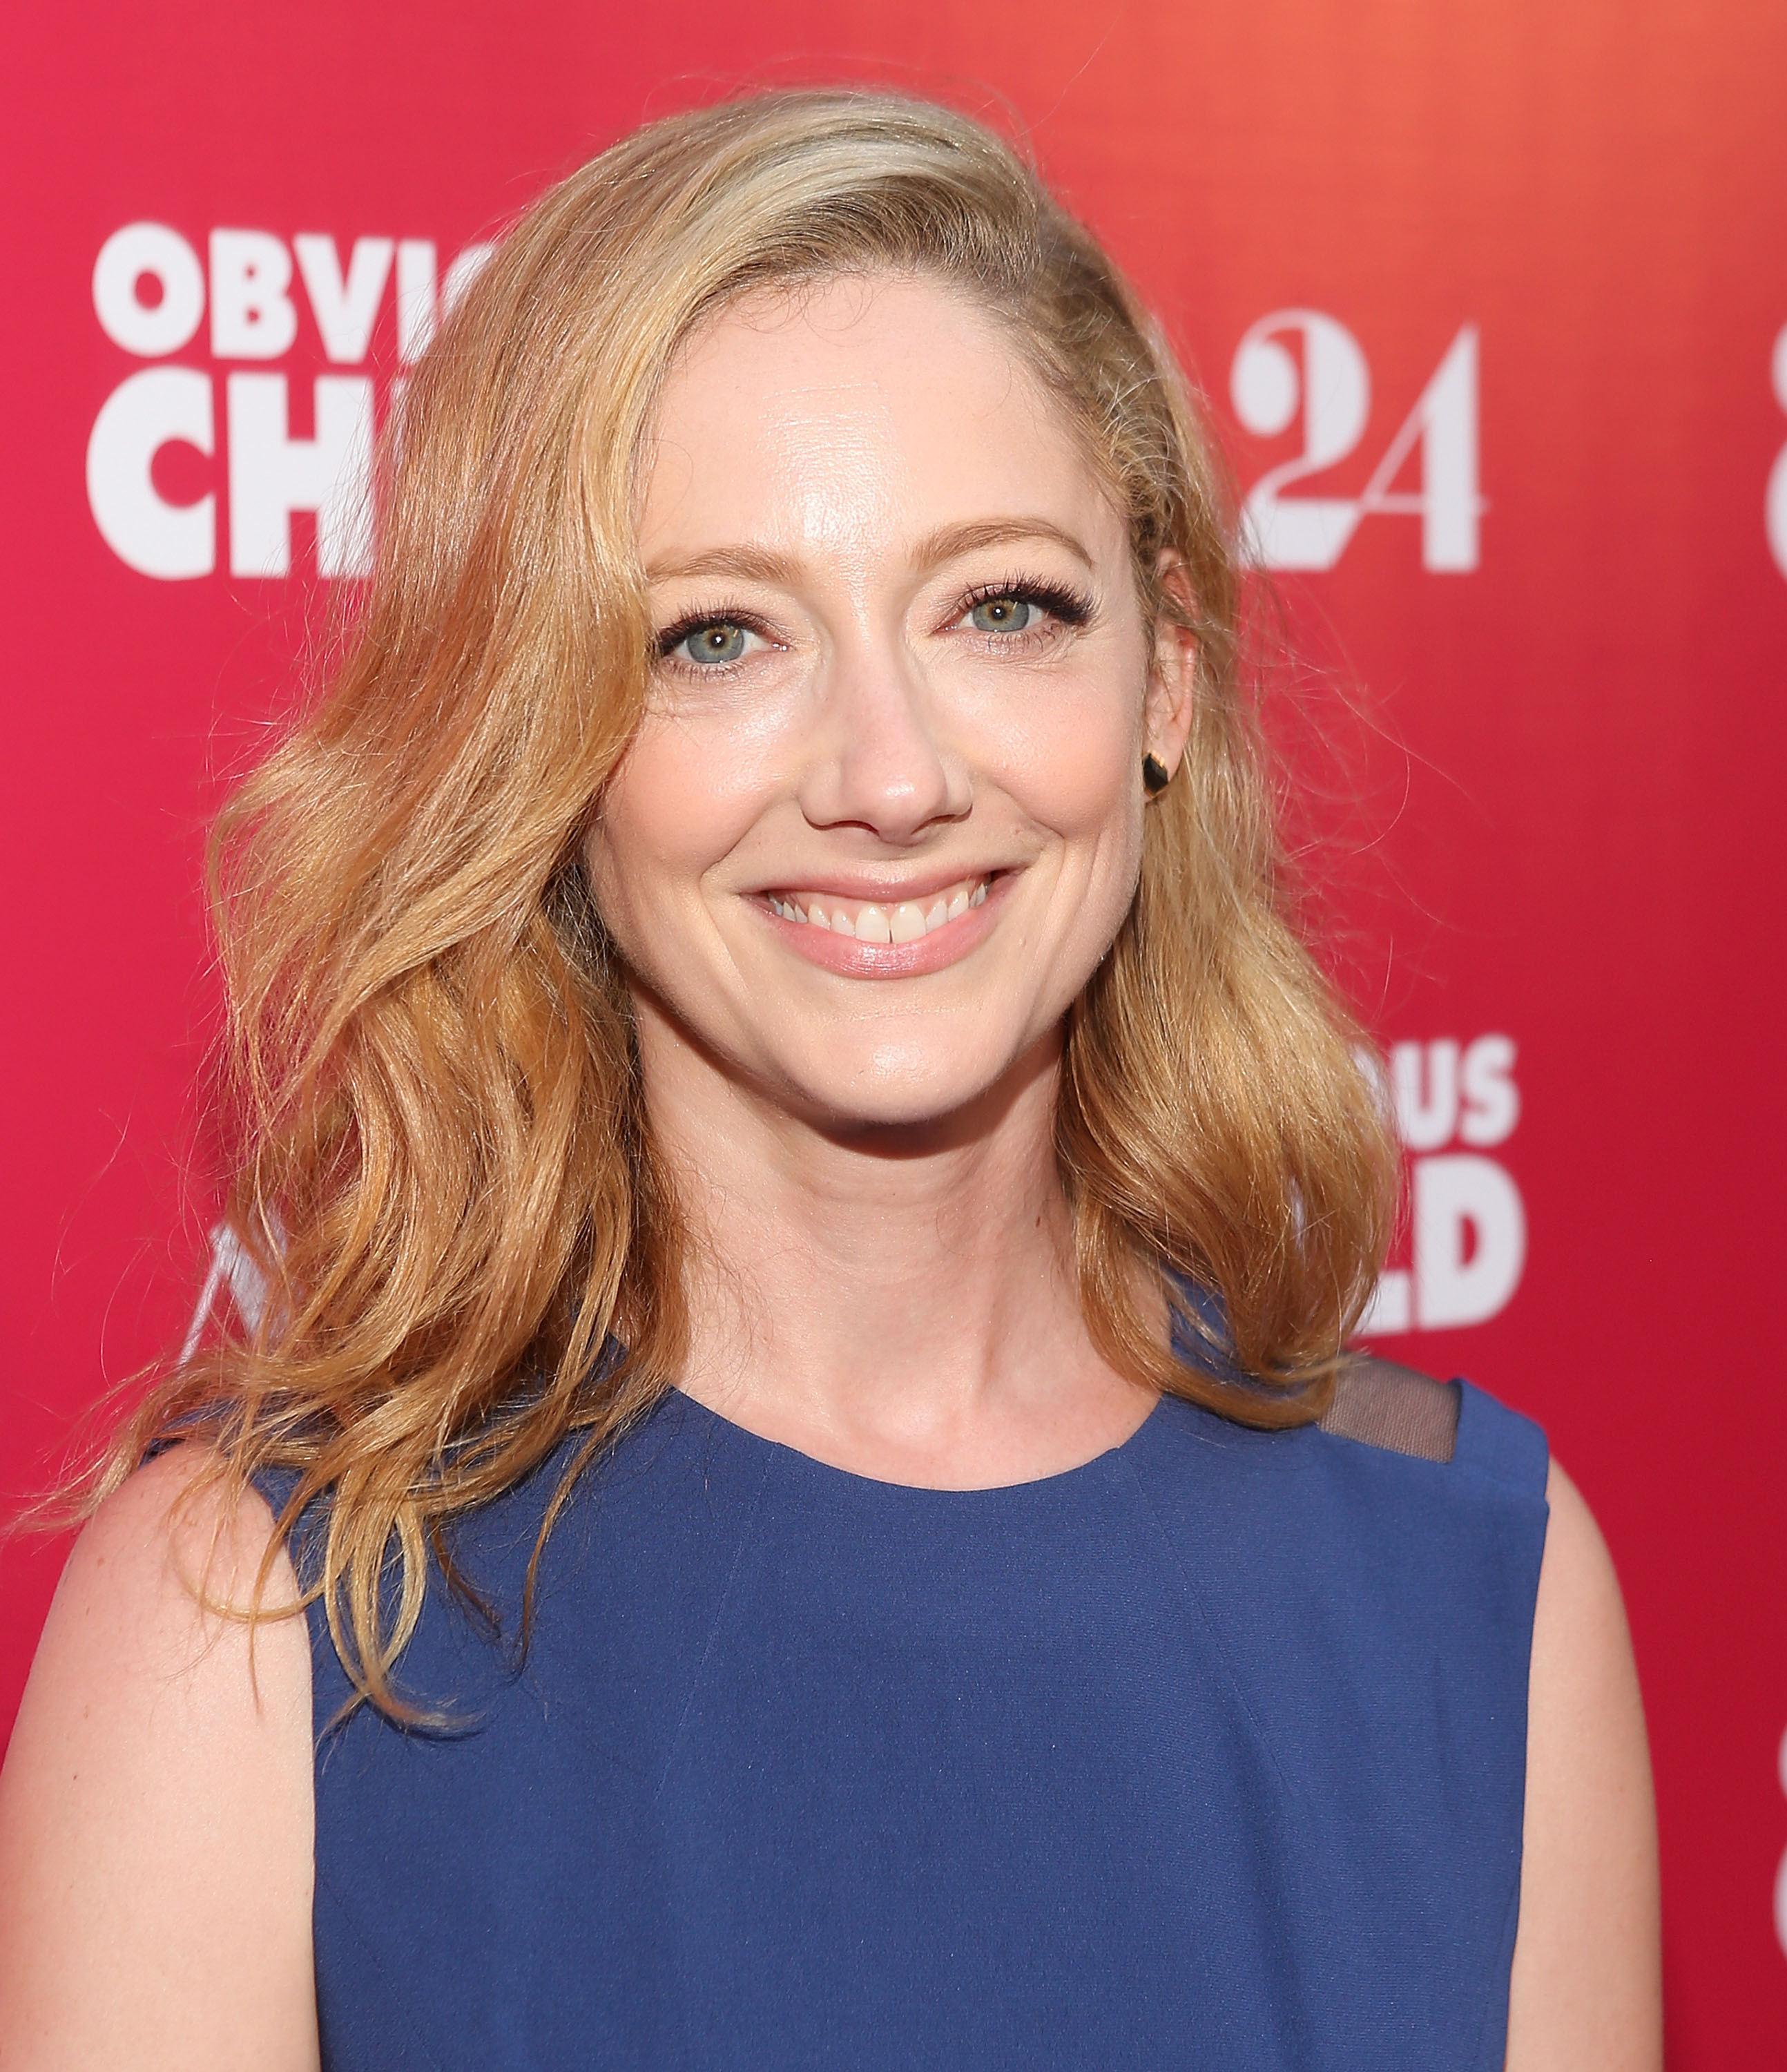 Judy Greer nudes (51 pictures), leaked Boobs, Instagram, butt 2020